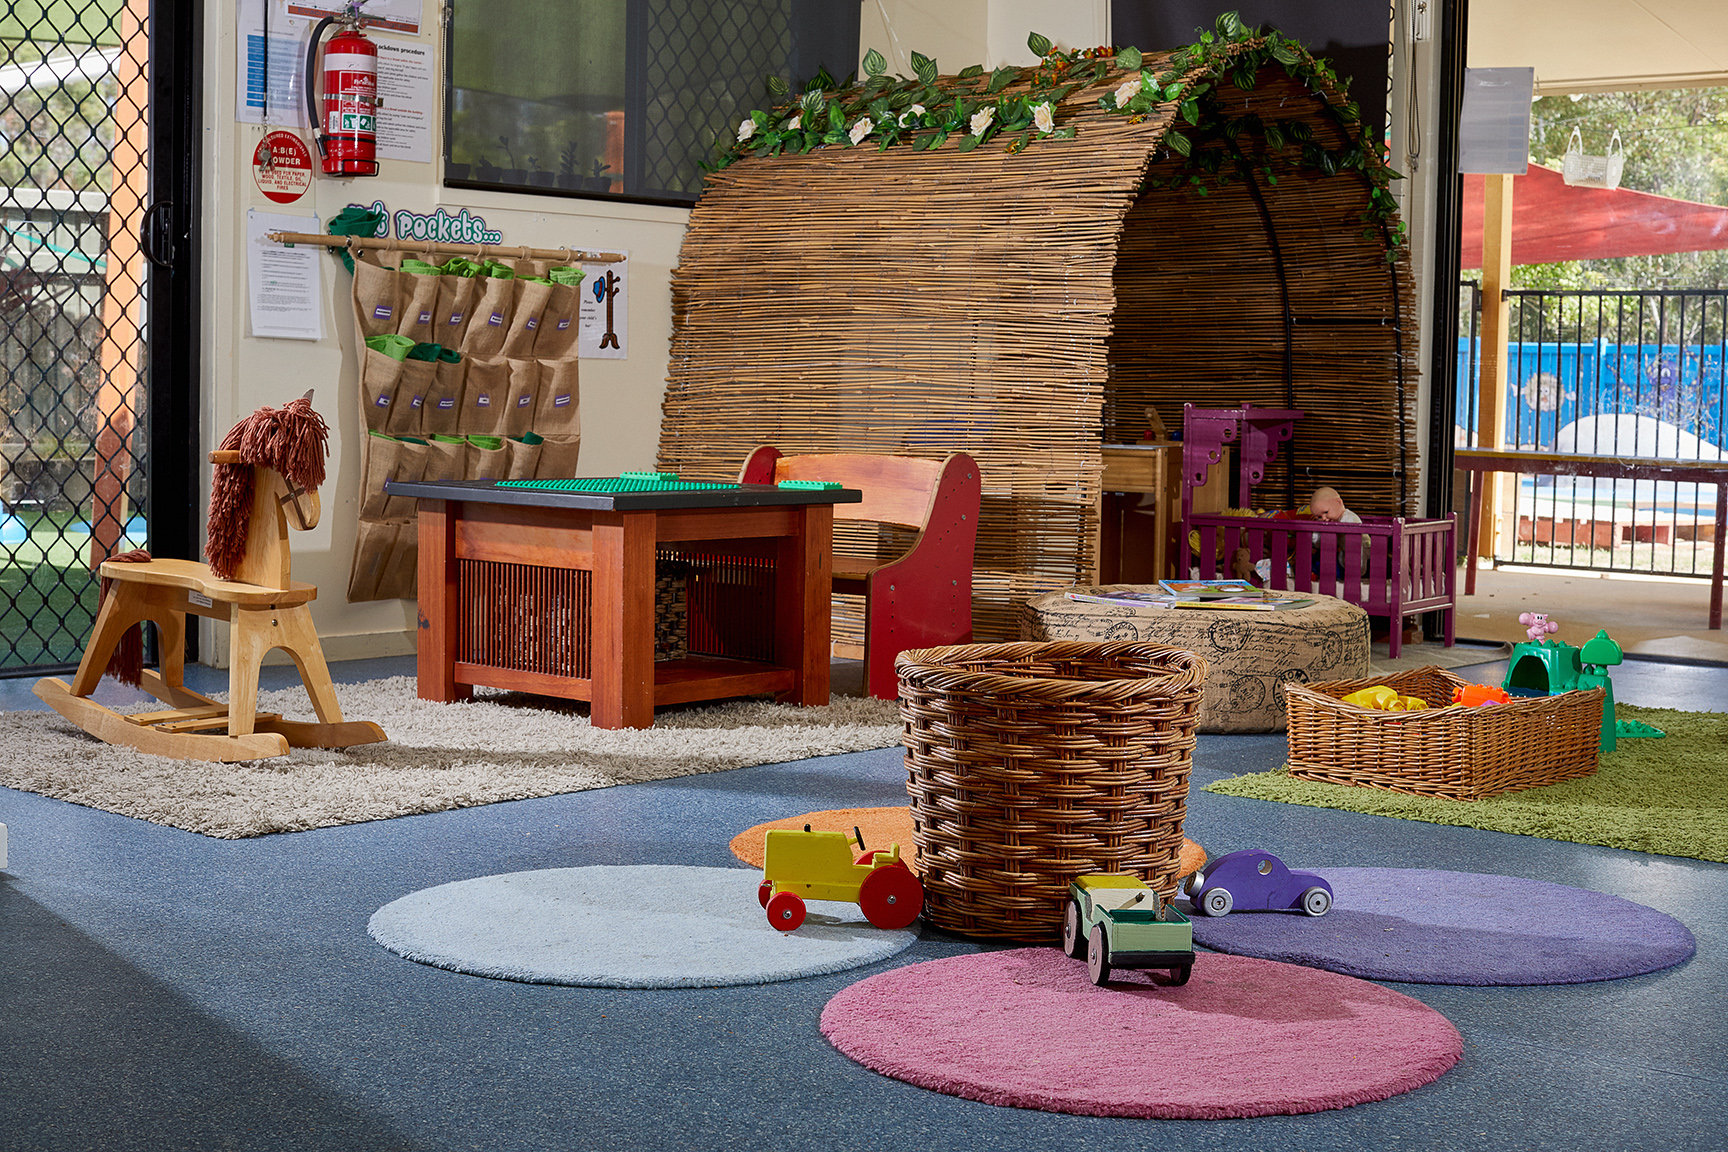 Area of child care classroom at Tadpoles Pacific Paradise